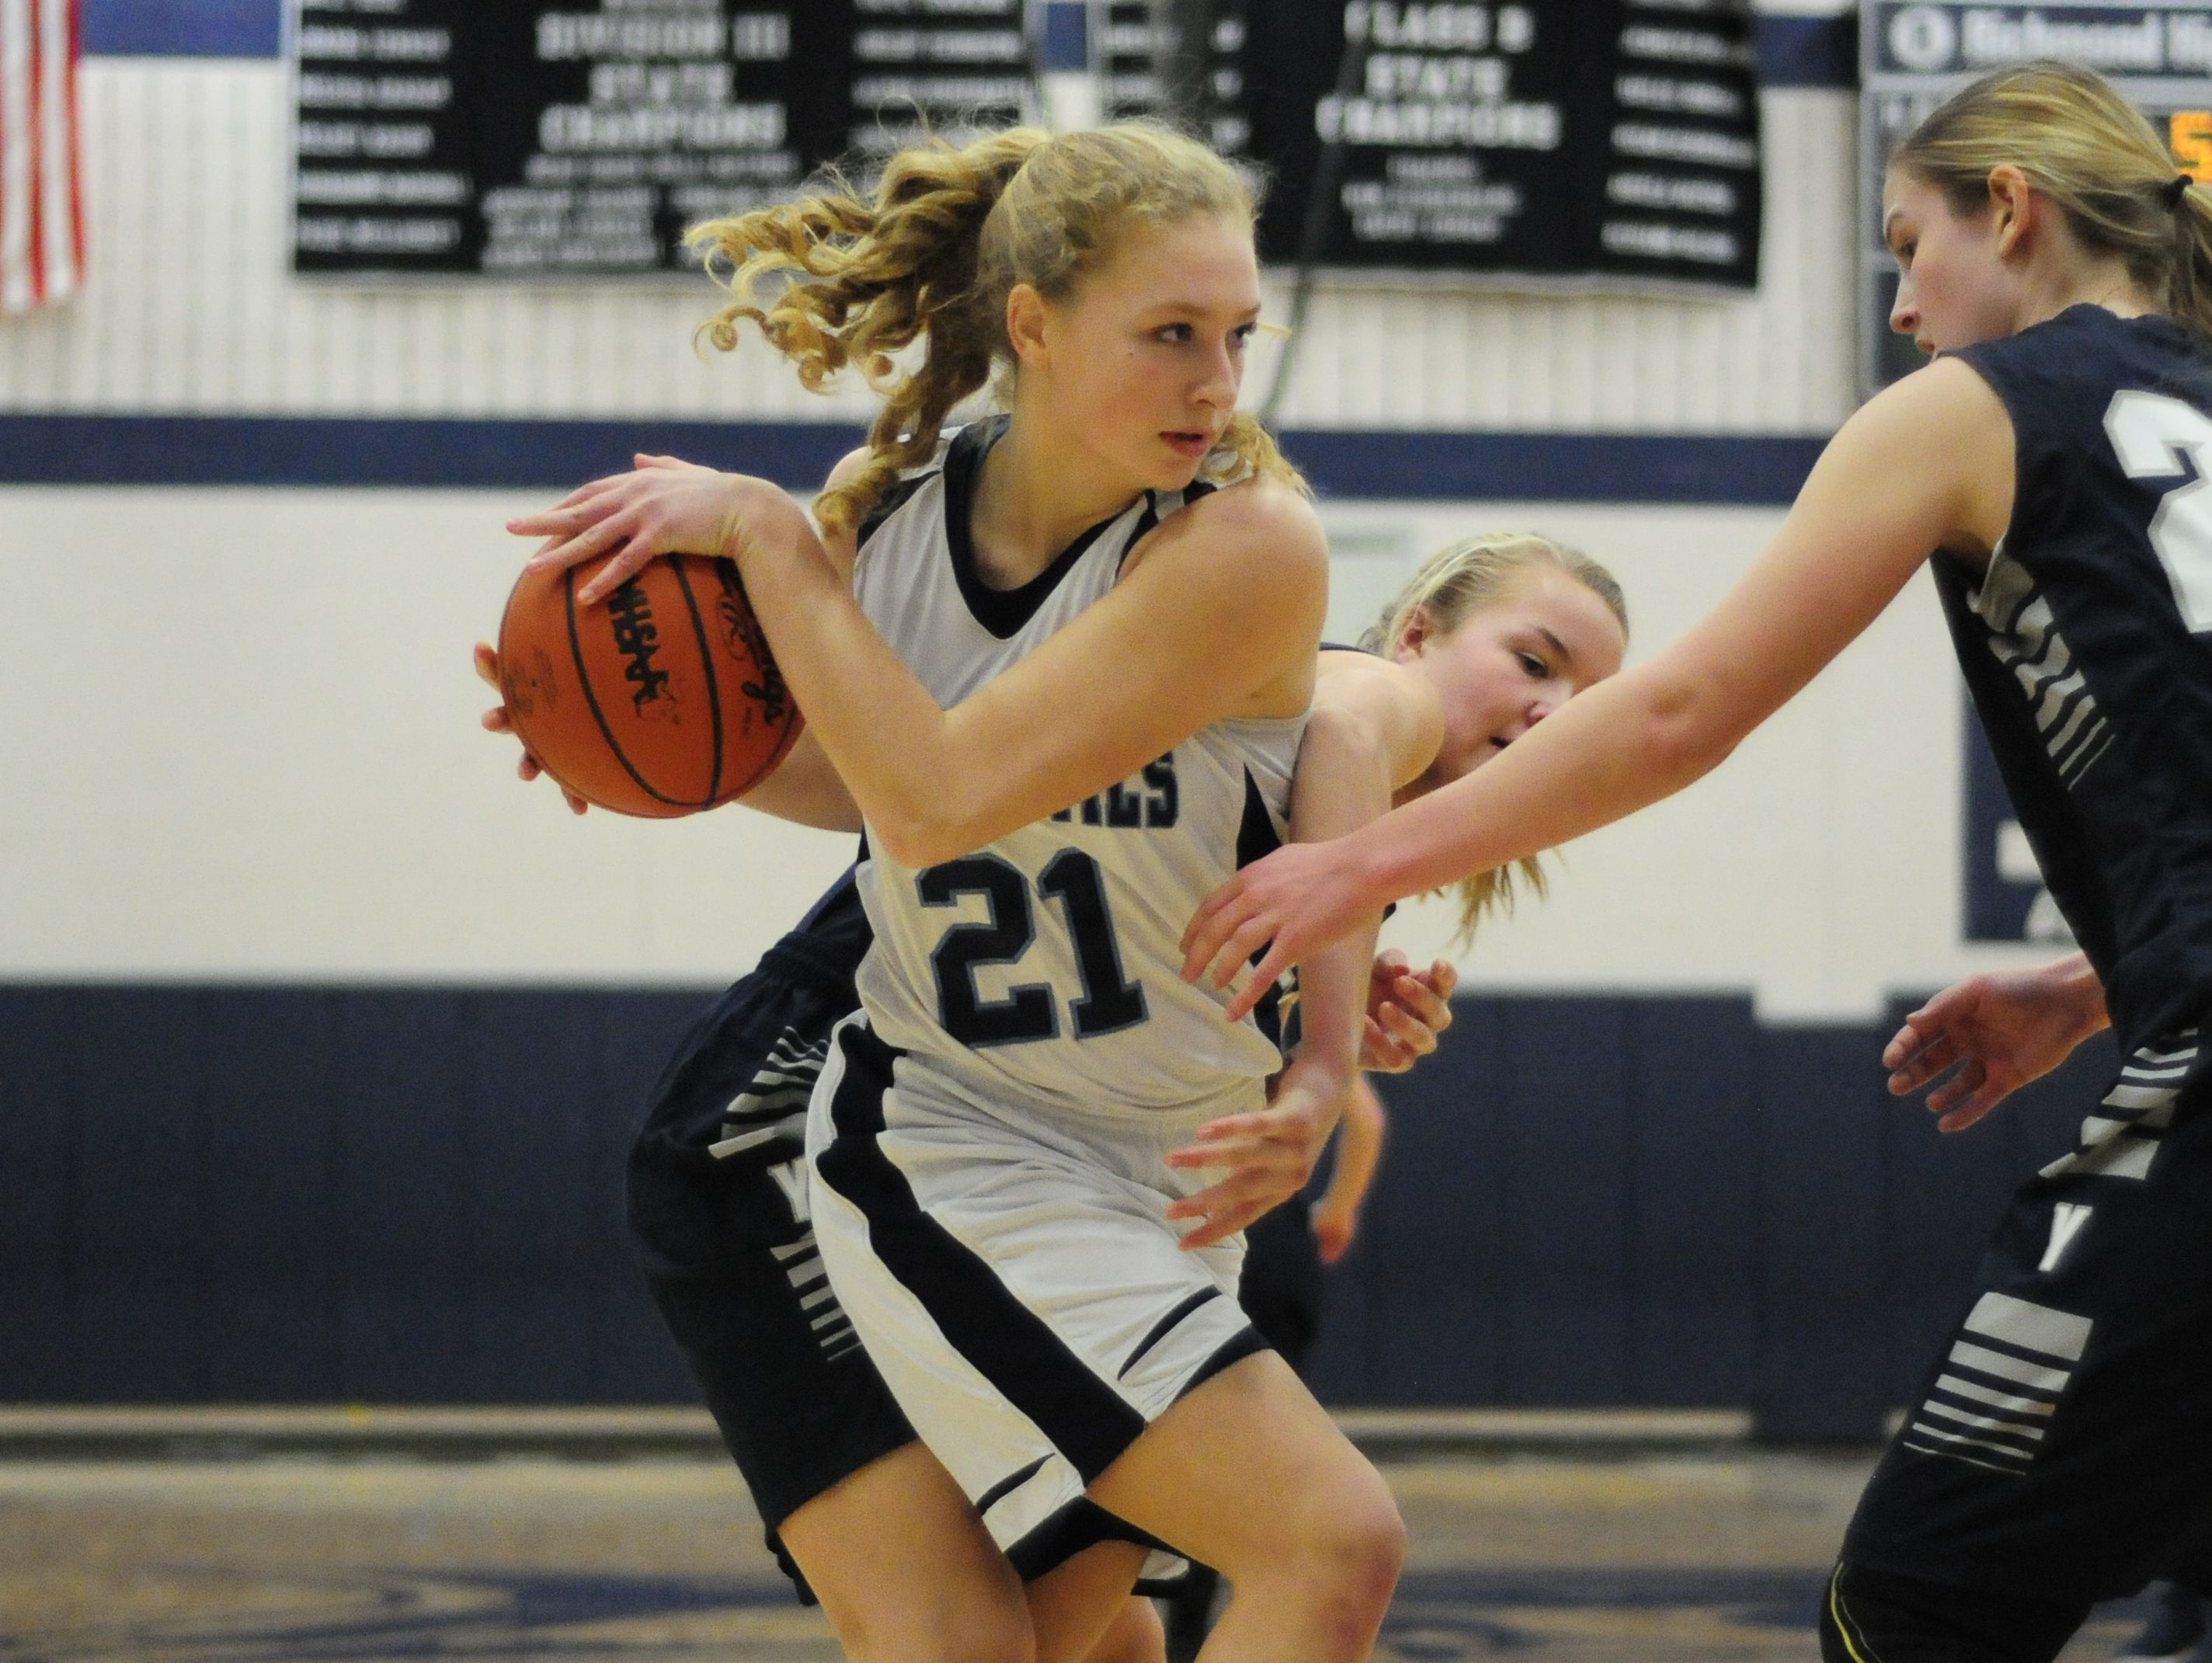 Richmond junior Jessica Weaver rips the ball away from Yale on Dec. 15, 2016.